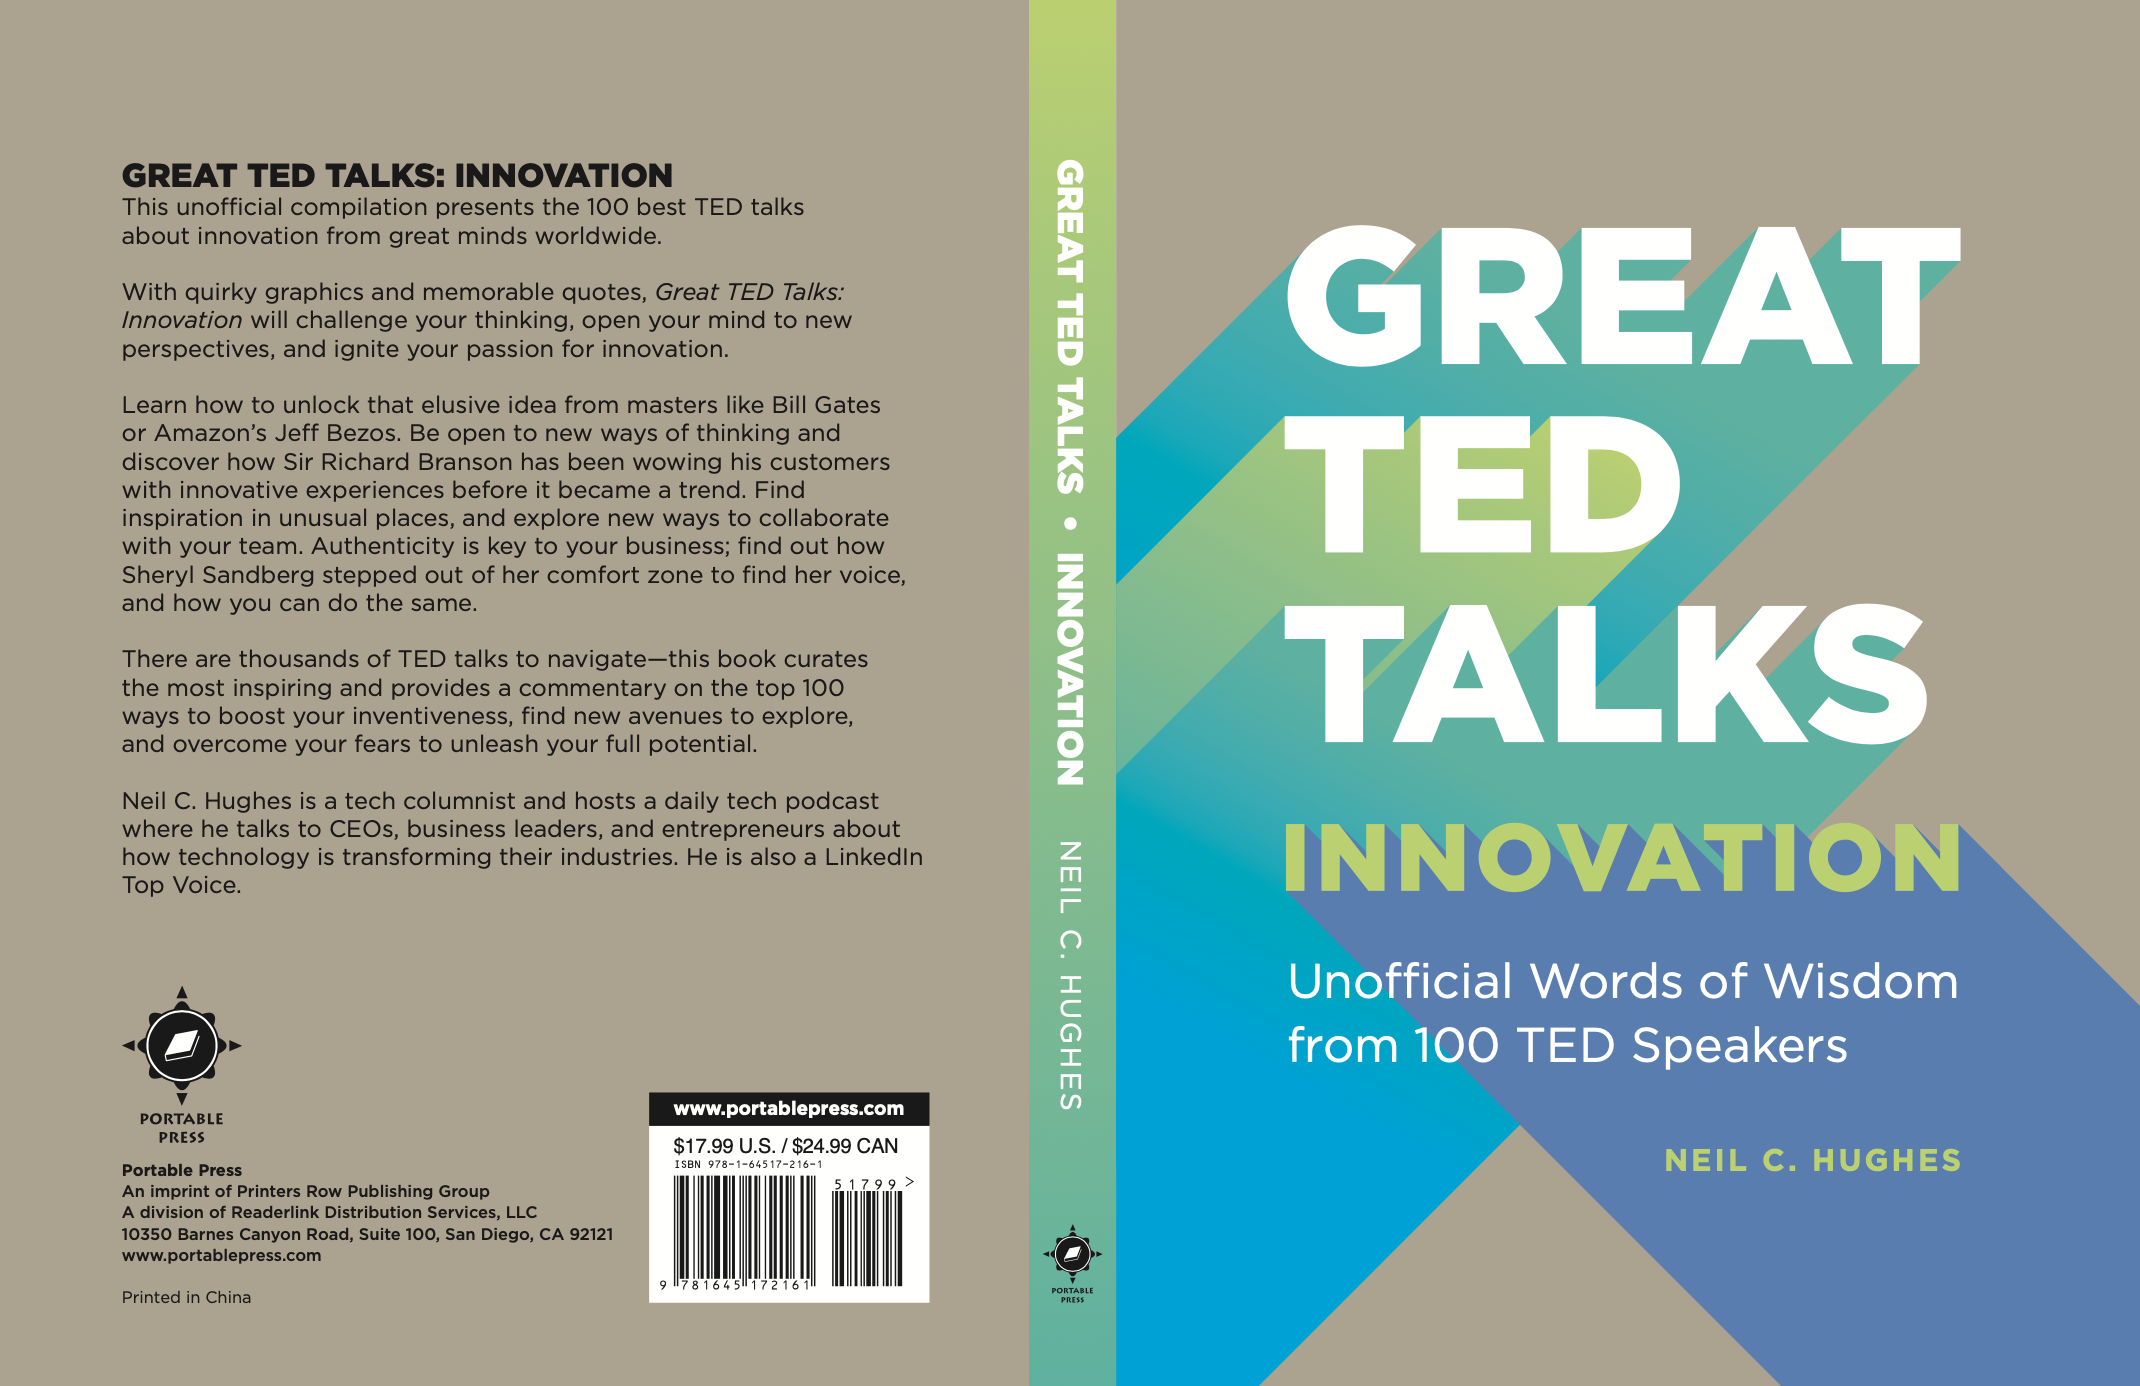 Great Ted Talks: Innovation - Neil C. Hughes